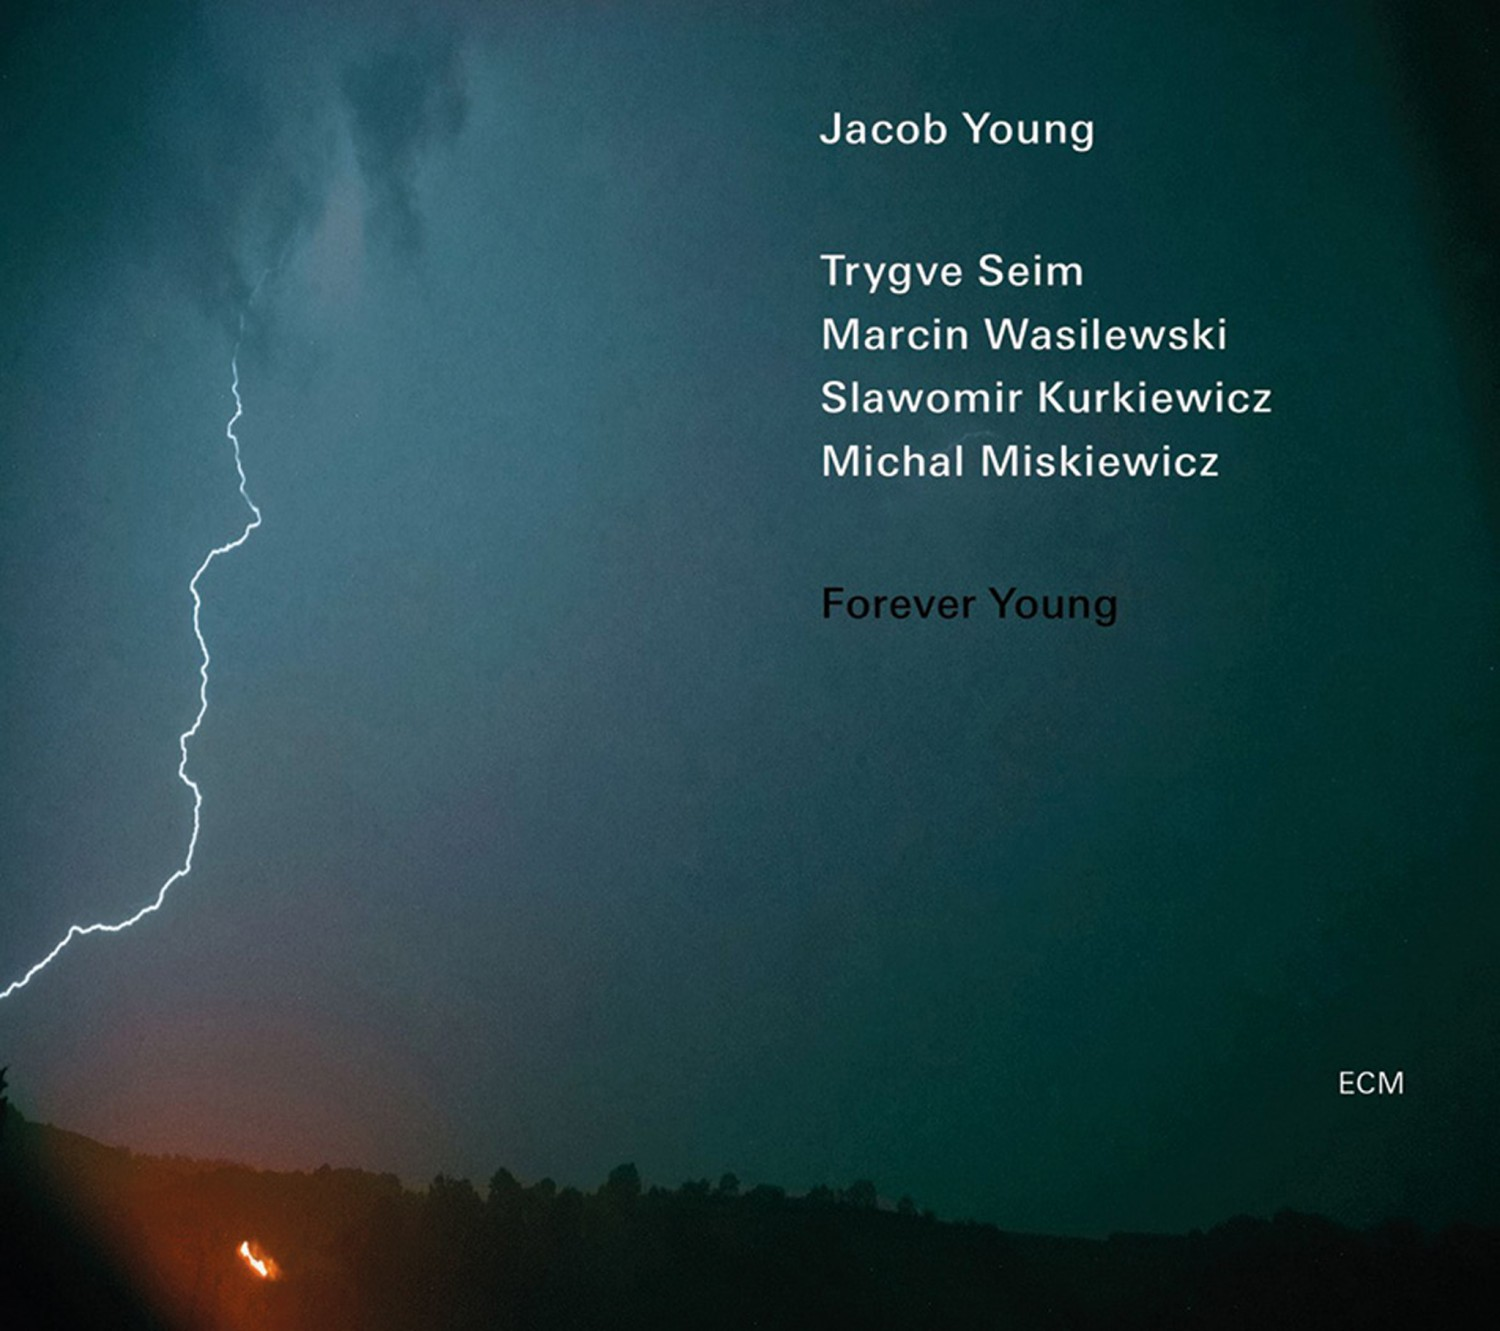 download_ecm_records_jacob_young_forever_young_bild_1410427618